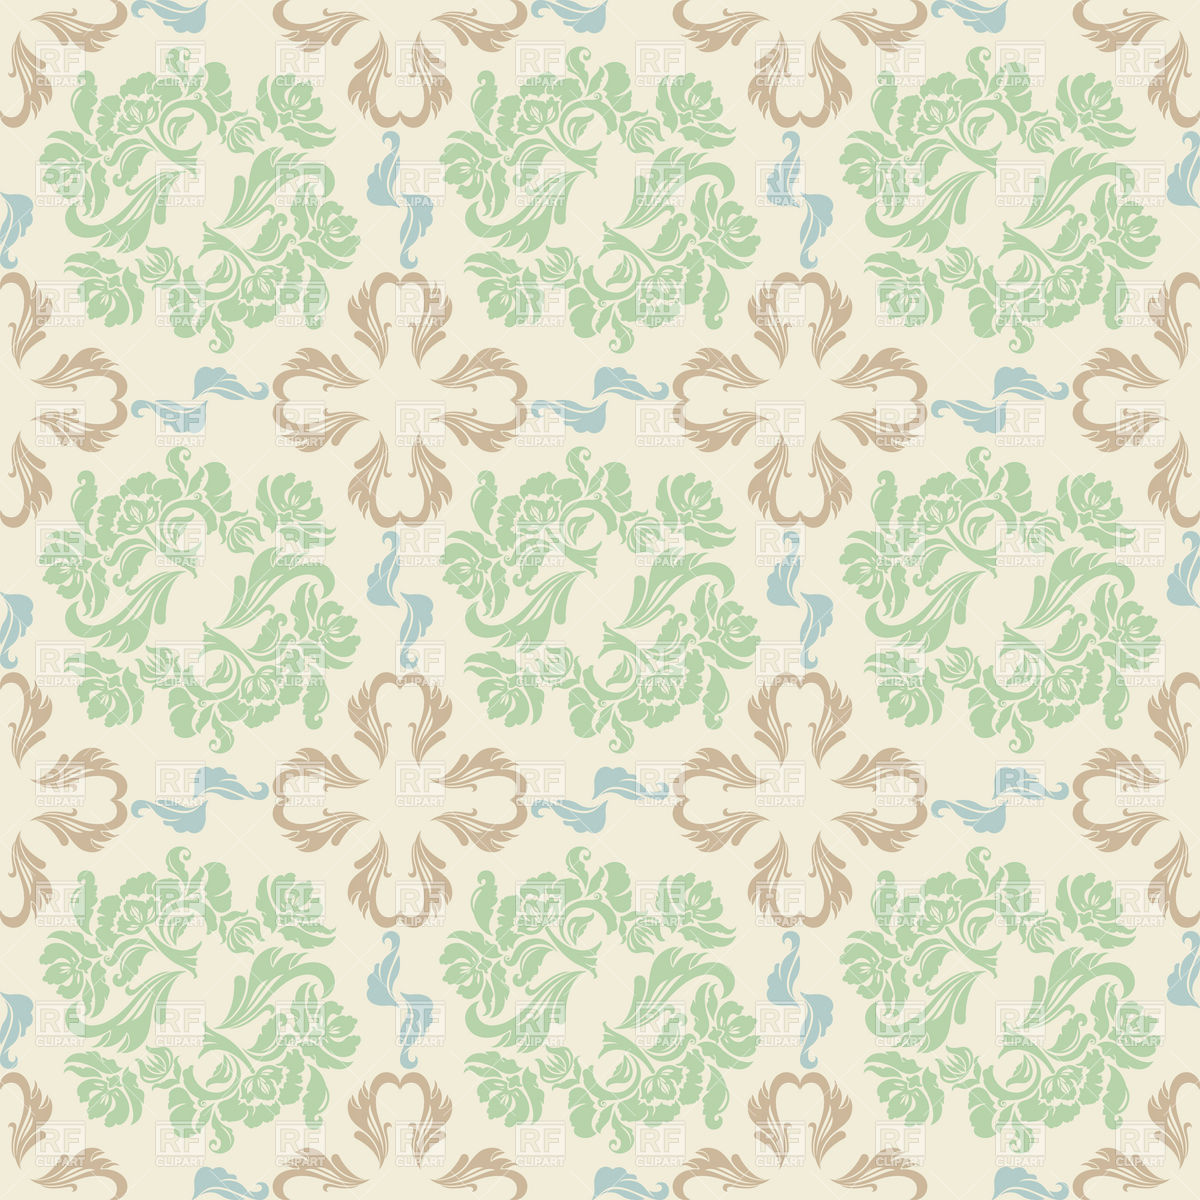 victorian wallpaper with curled pattern download royalty free 1200x1200